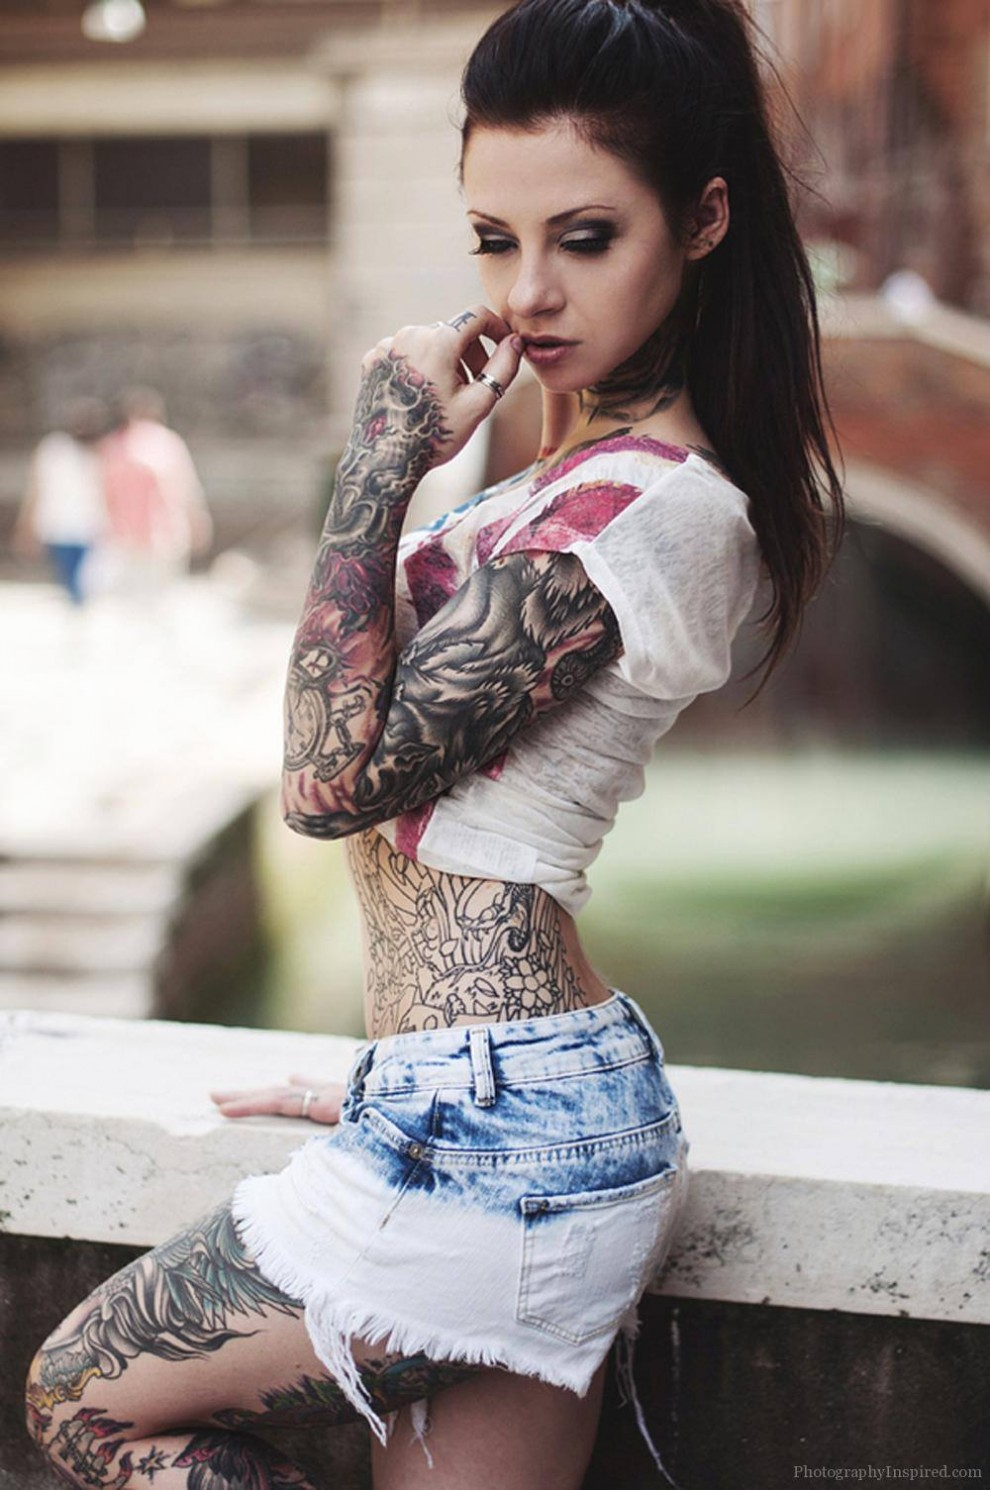 Super Hot Covered In Tattoos